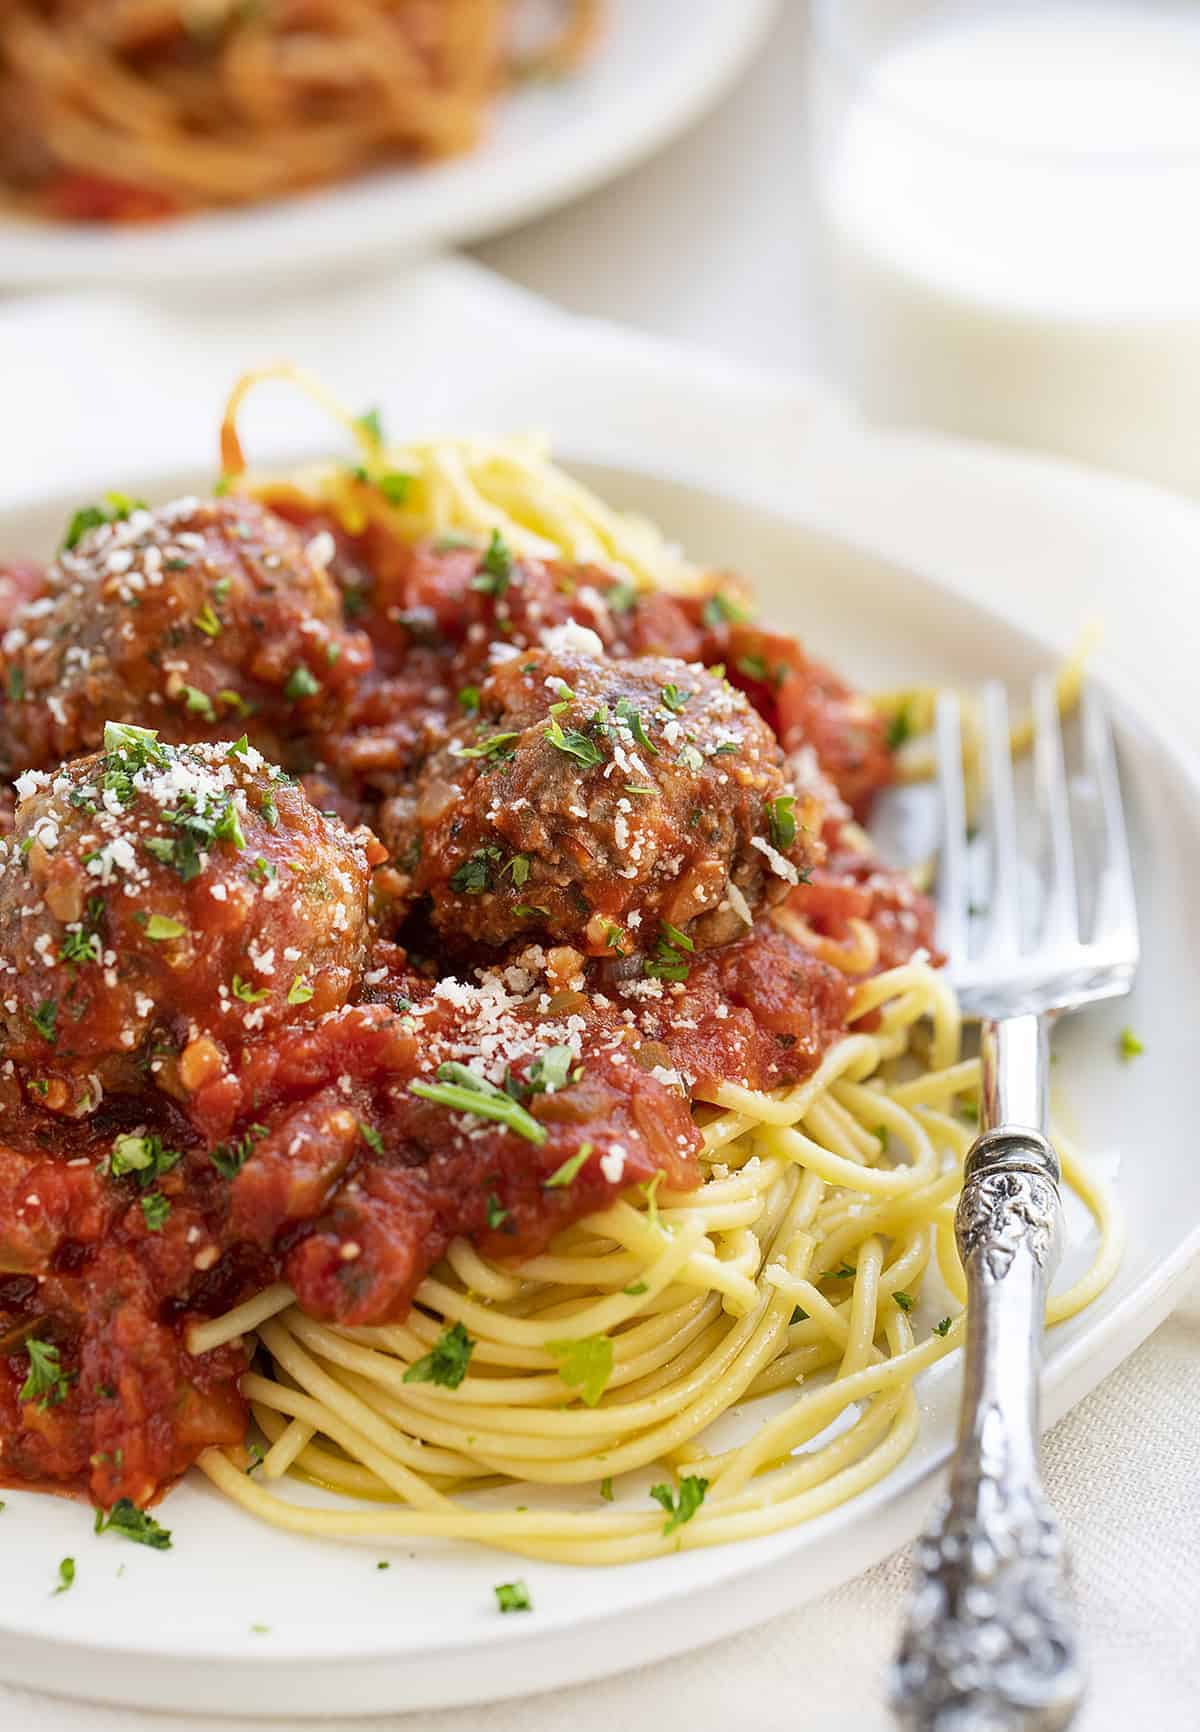 Plate of Spaghetti and Meatballs with Fork and Milk